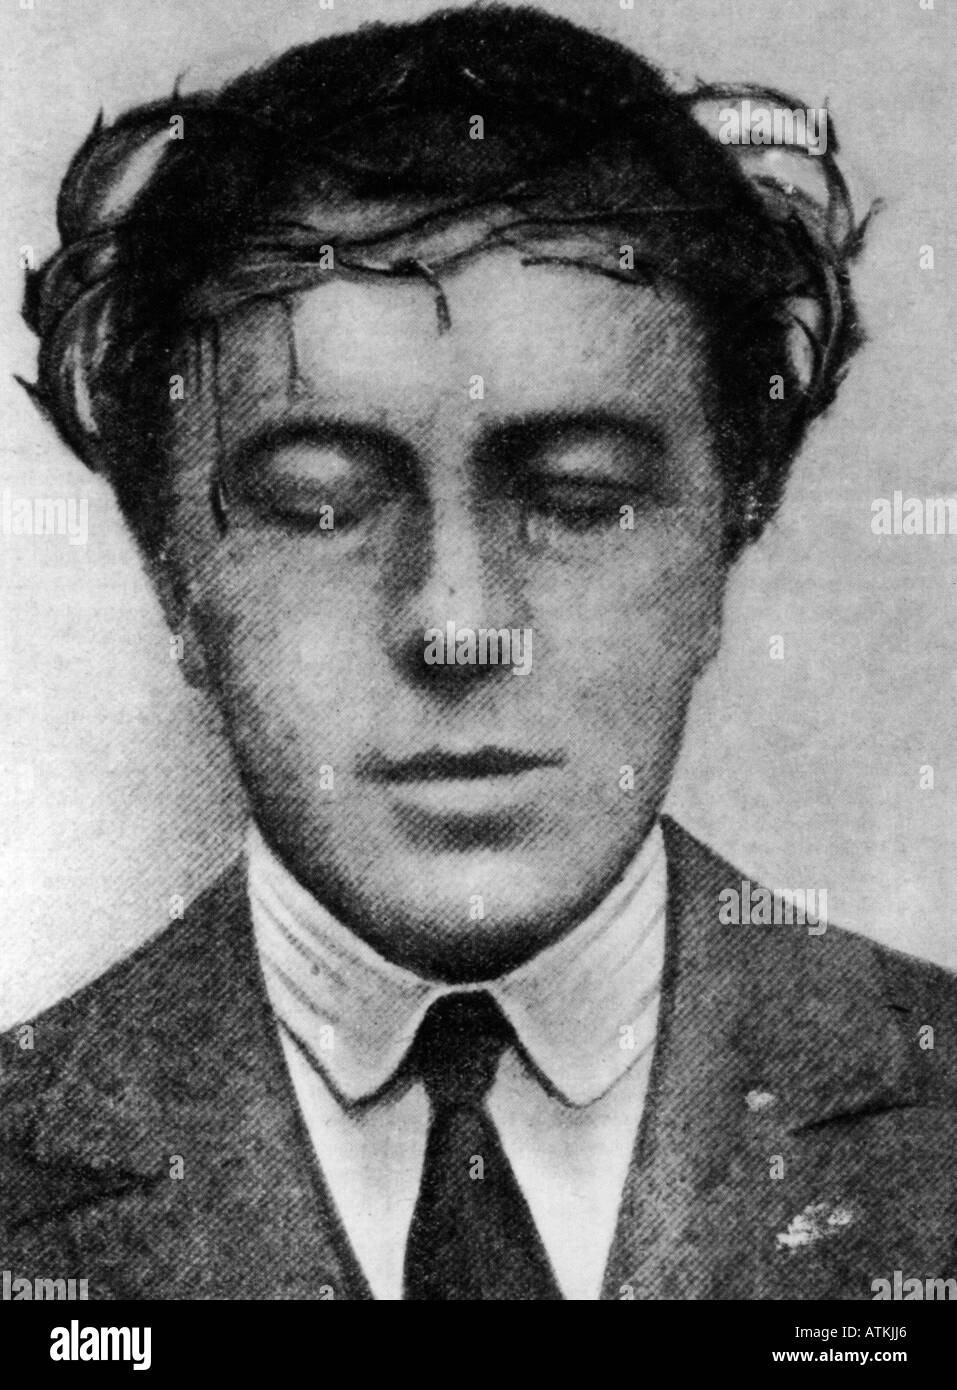 ANDRE BRETON French surrealist writer 1896 to 1966 best known for his novel Nadja first published in 1928 - Stock Image